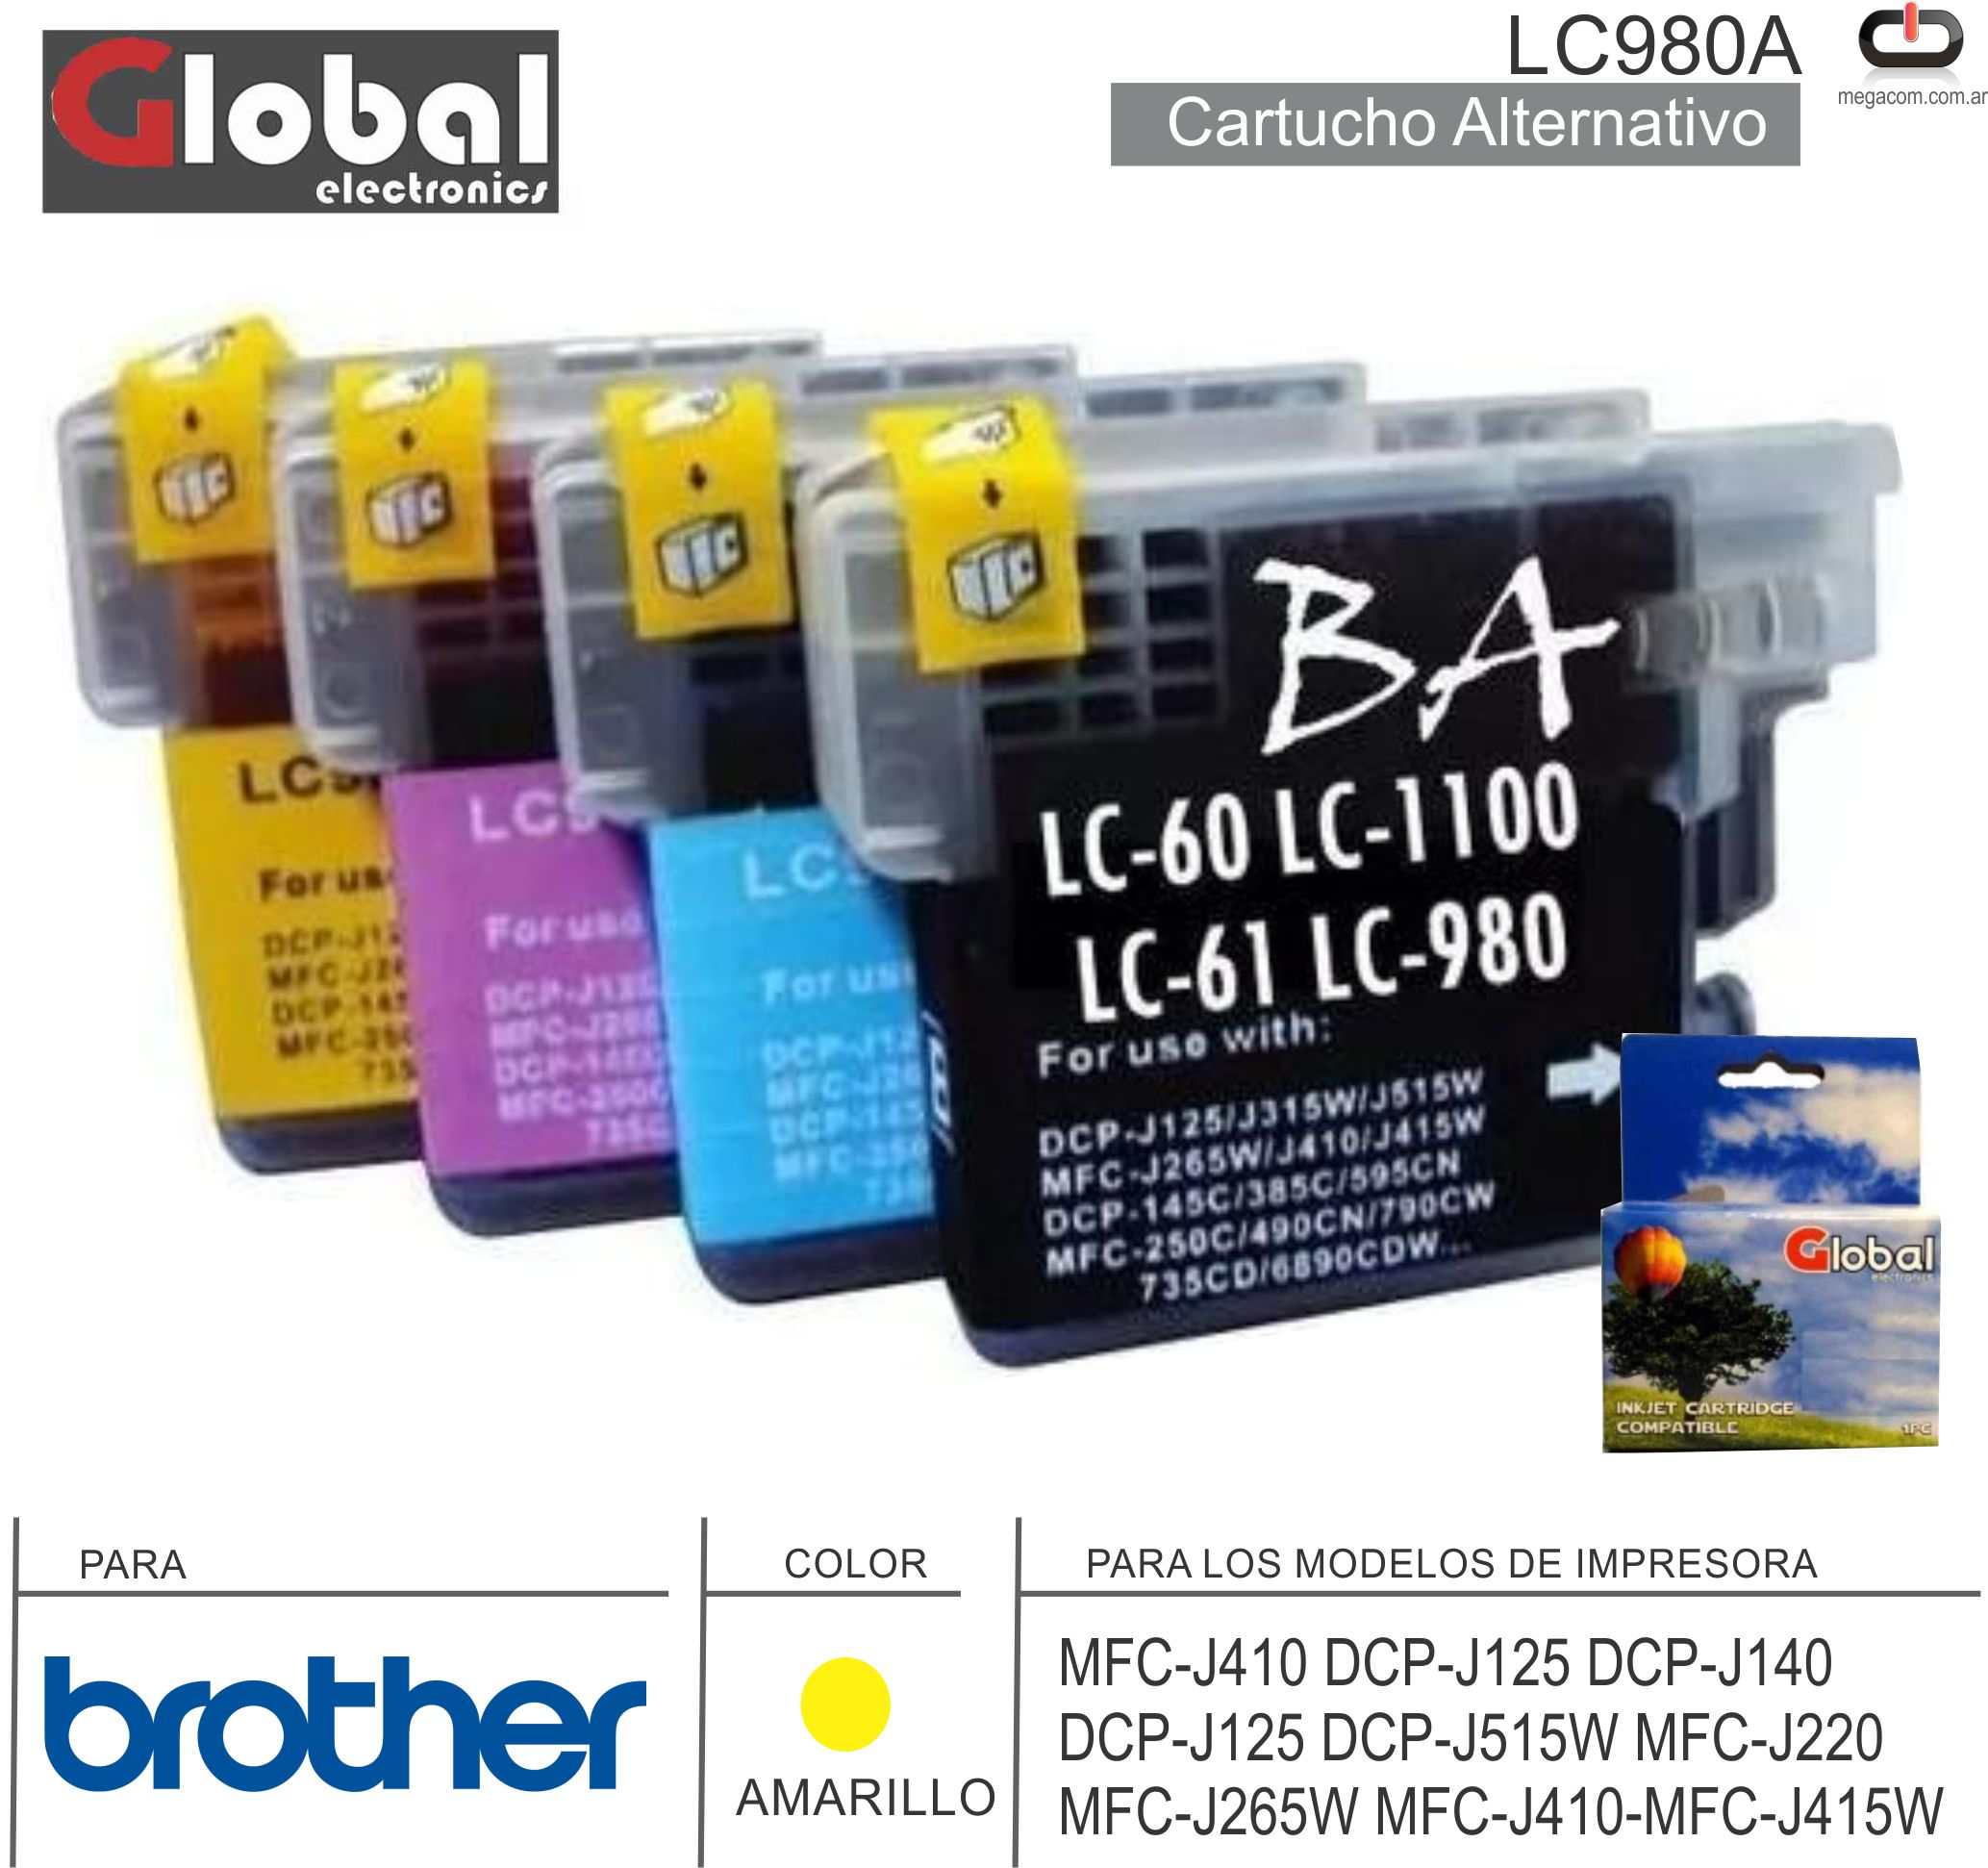 Cart ALT BROTHER LC980A Ama GLOBAL